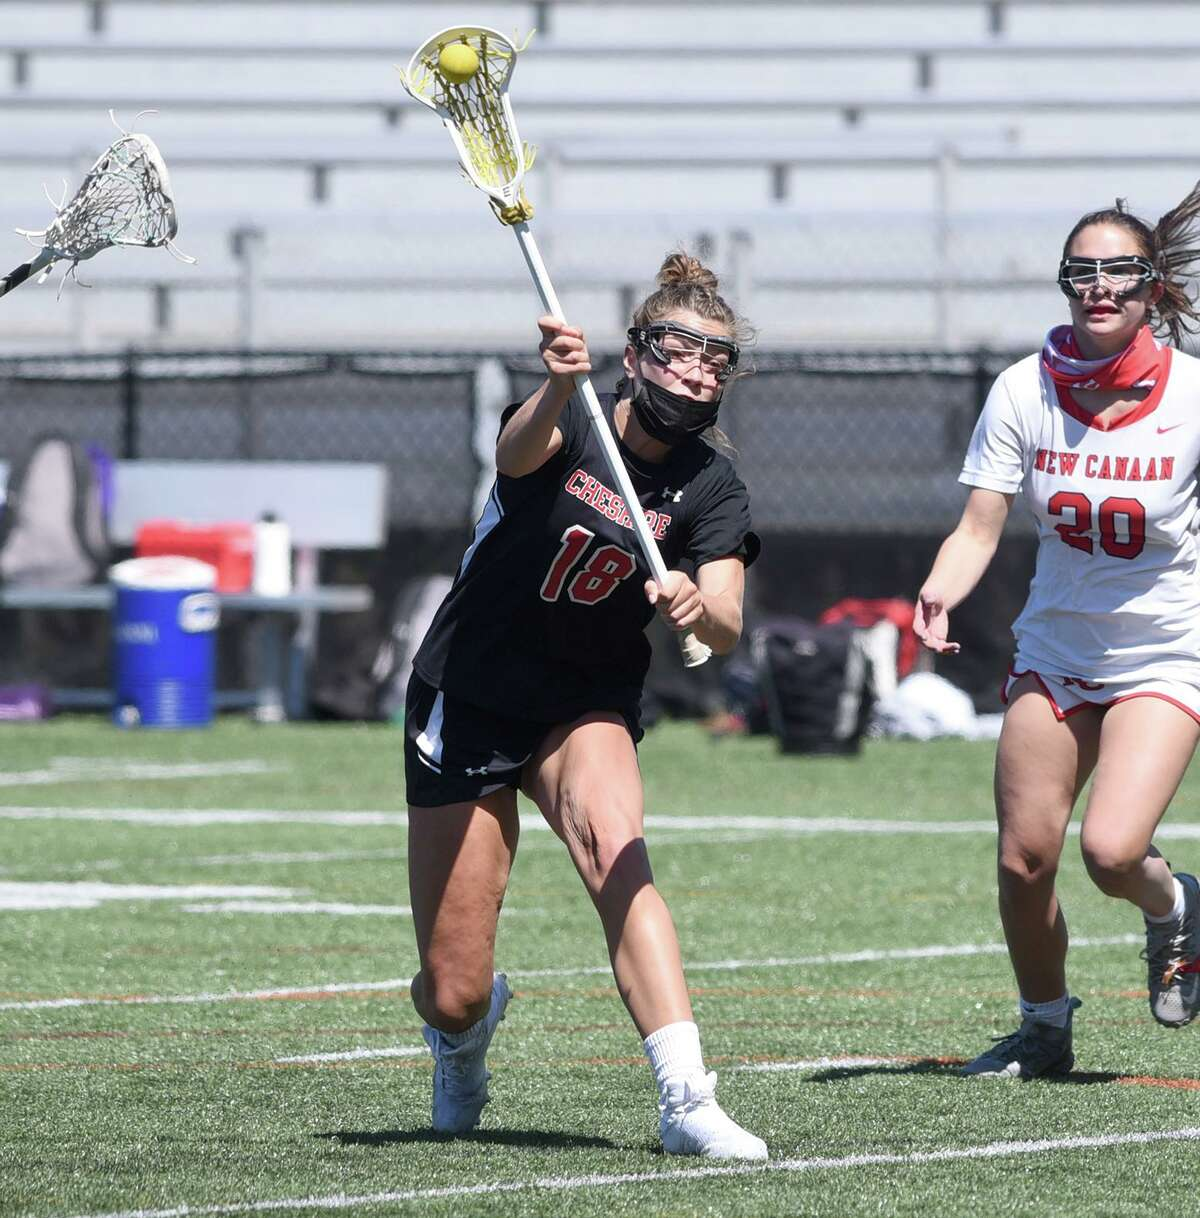 Cheshire's Raegan Bailey takes a shot against New Canaan at Dunning Field on Saturday.